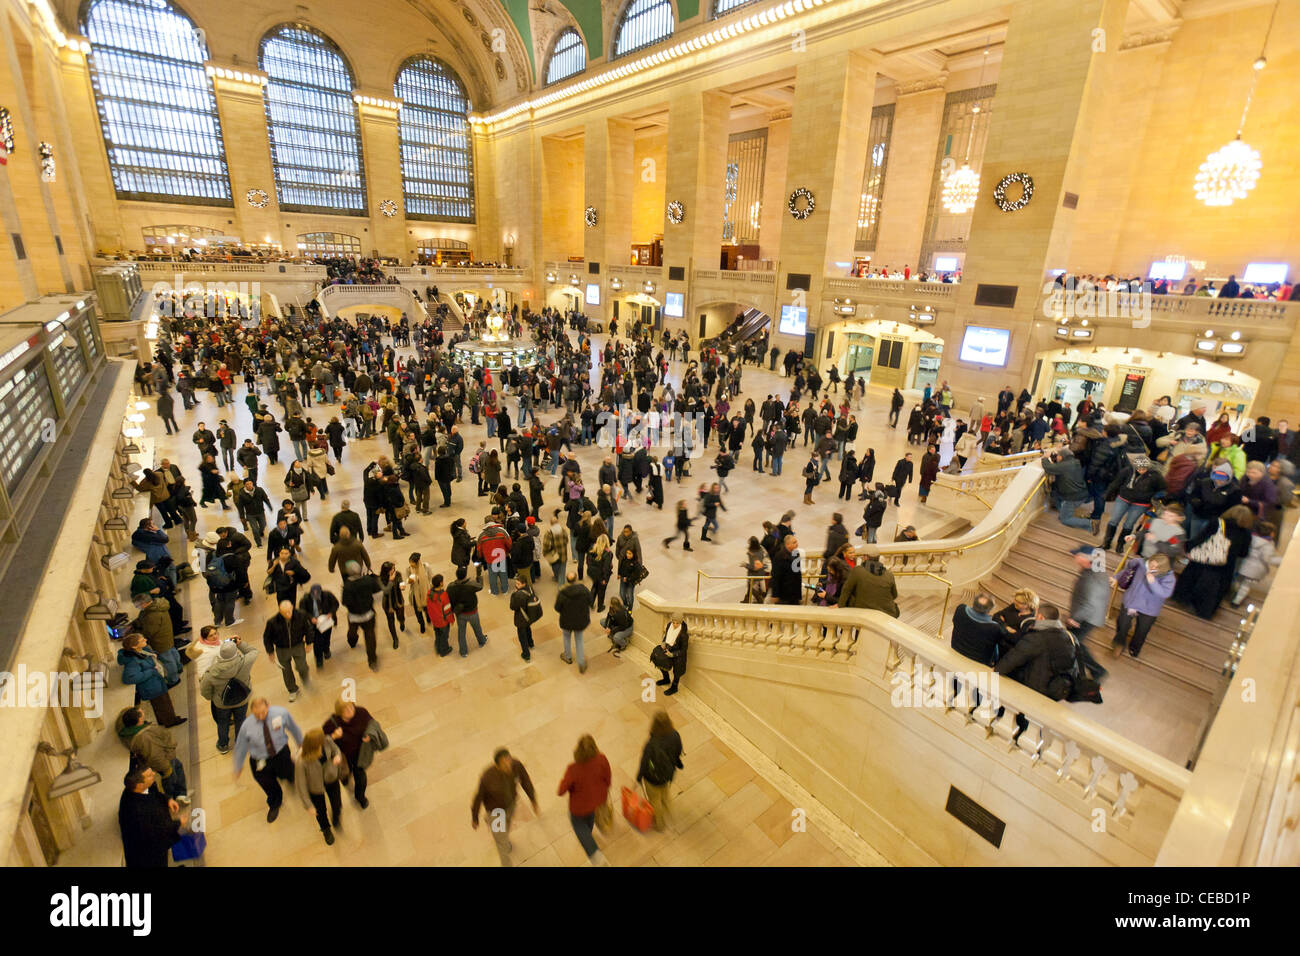 An interior view of Grand Central Station in New York City with all the travelers. - Stock Image